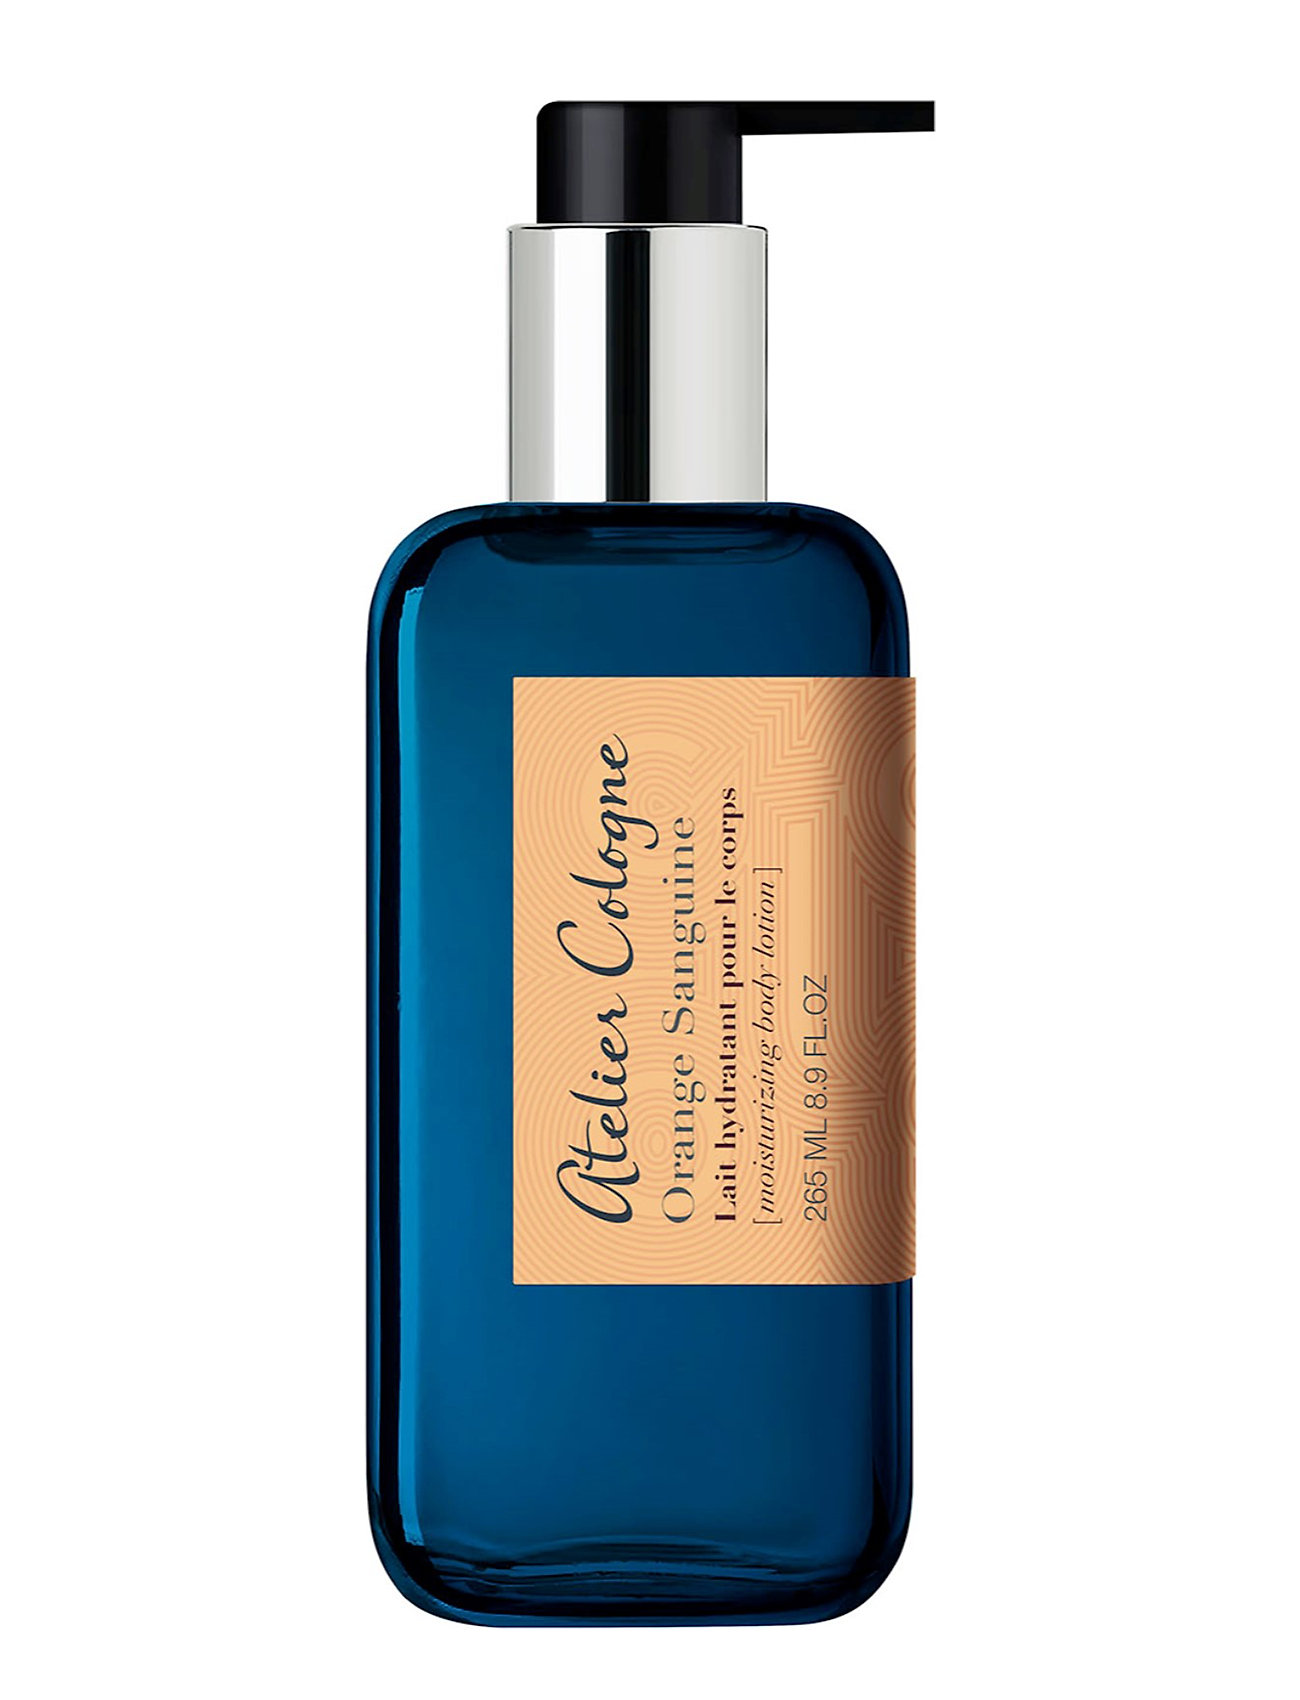 Image of Collection Joie De Vivre Orange Sanguine Body Lotion Body Lotion Hudcreme Nude Atelier Cologne (3055351859)